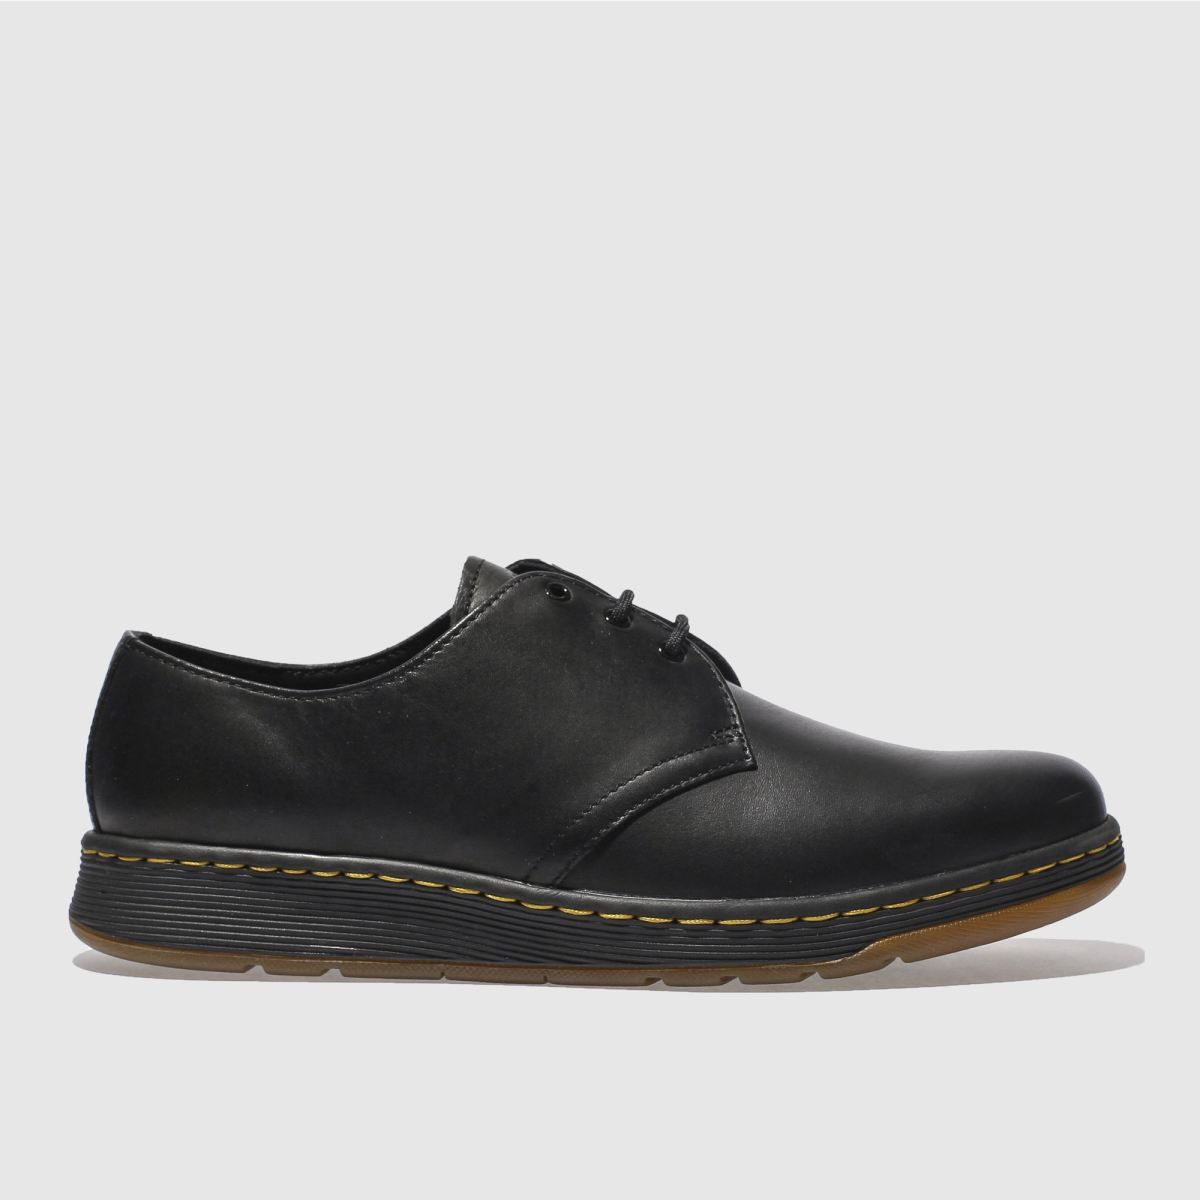 Dr Martens Black Cavendish Shoes